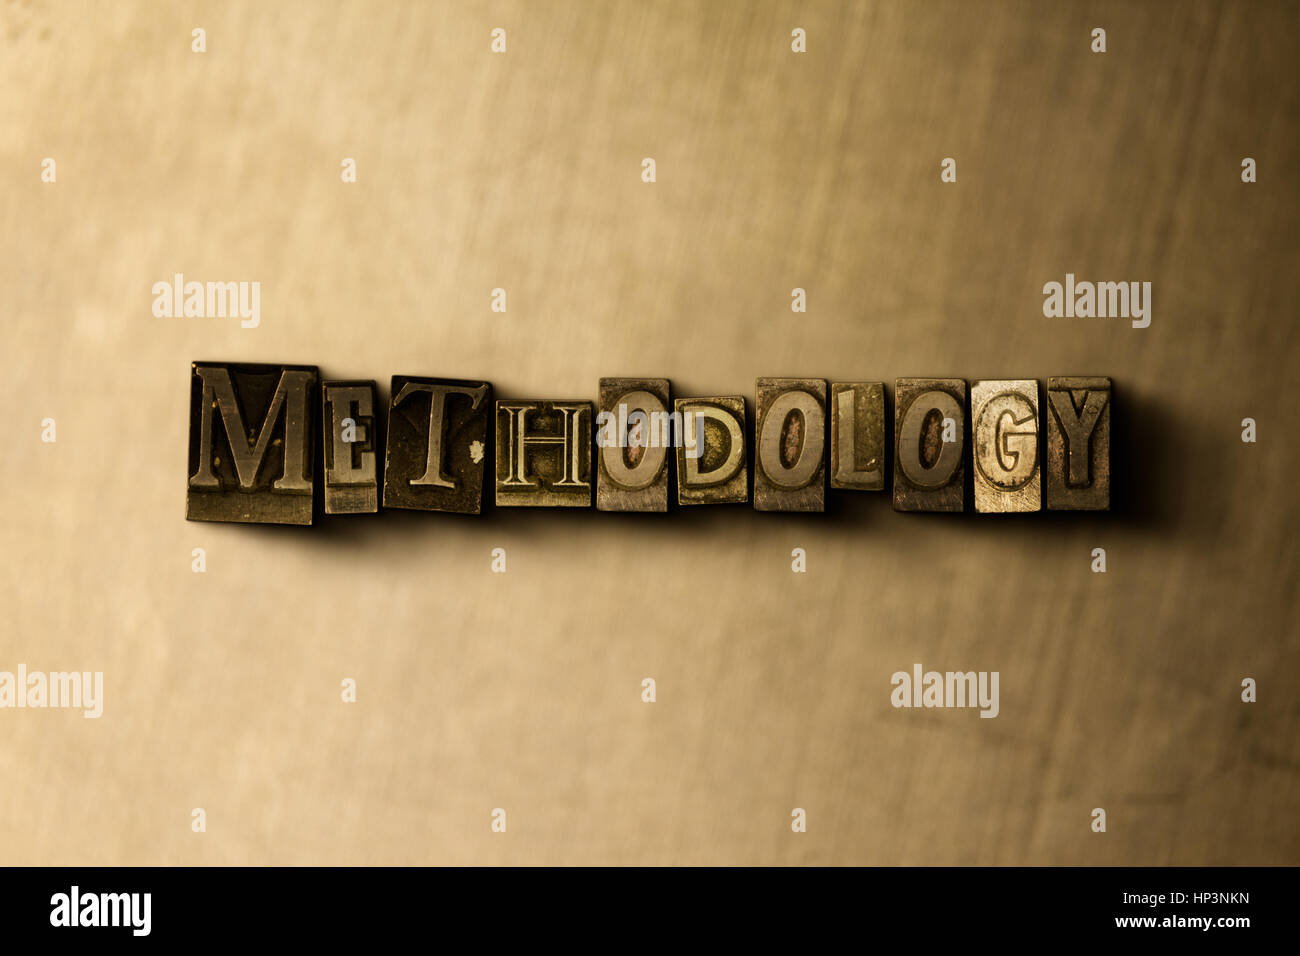 METHODOLOGY - close-up of grungy vintage typeset word on metal backdrop. Royalty free stock illustration.  Can be - Stock Image